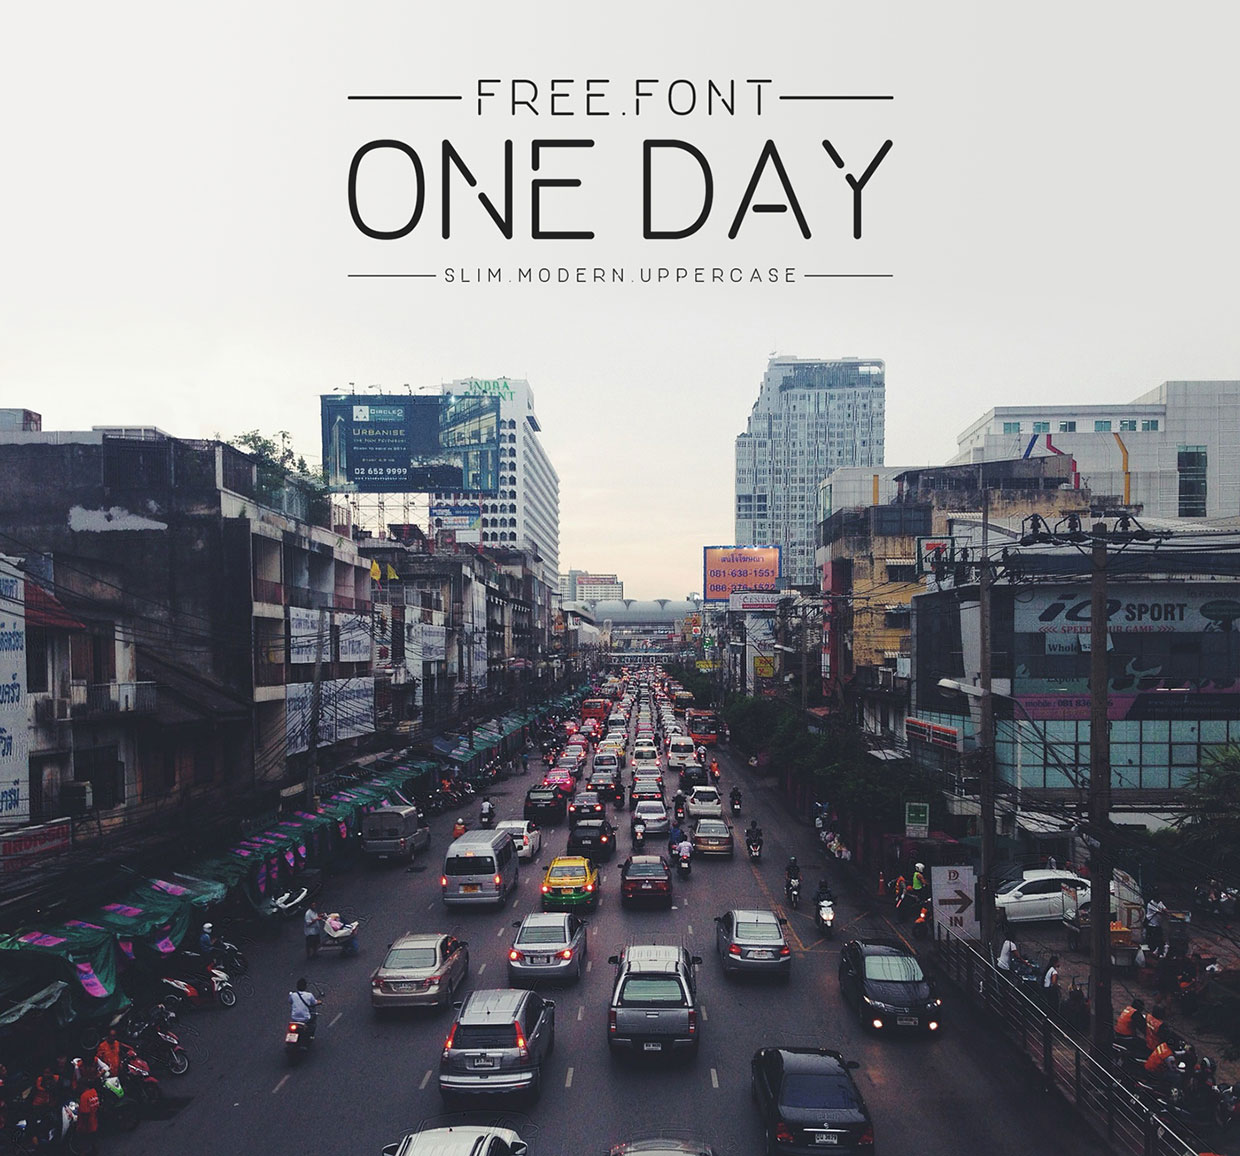 one-day-best-free-logo-fonts-092